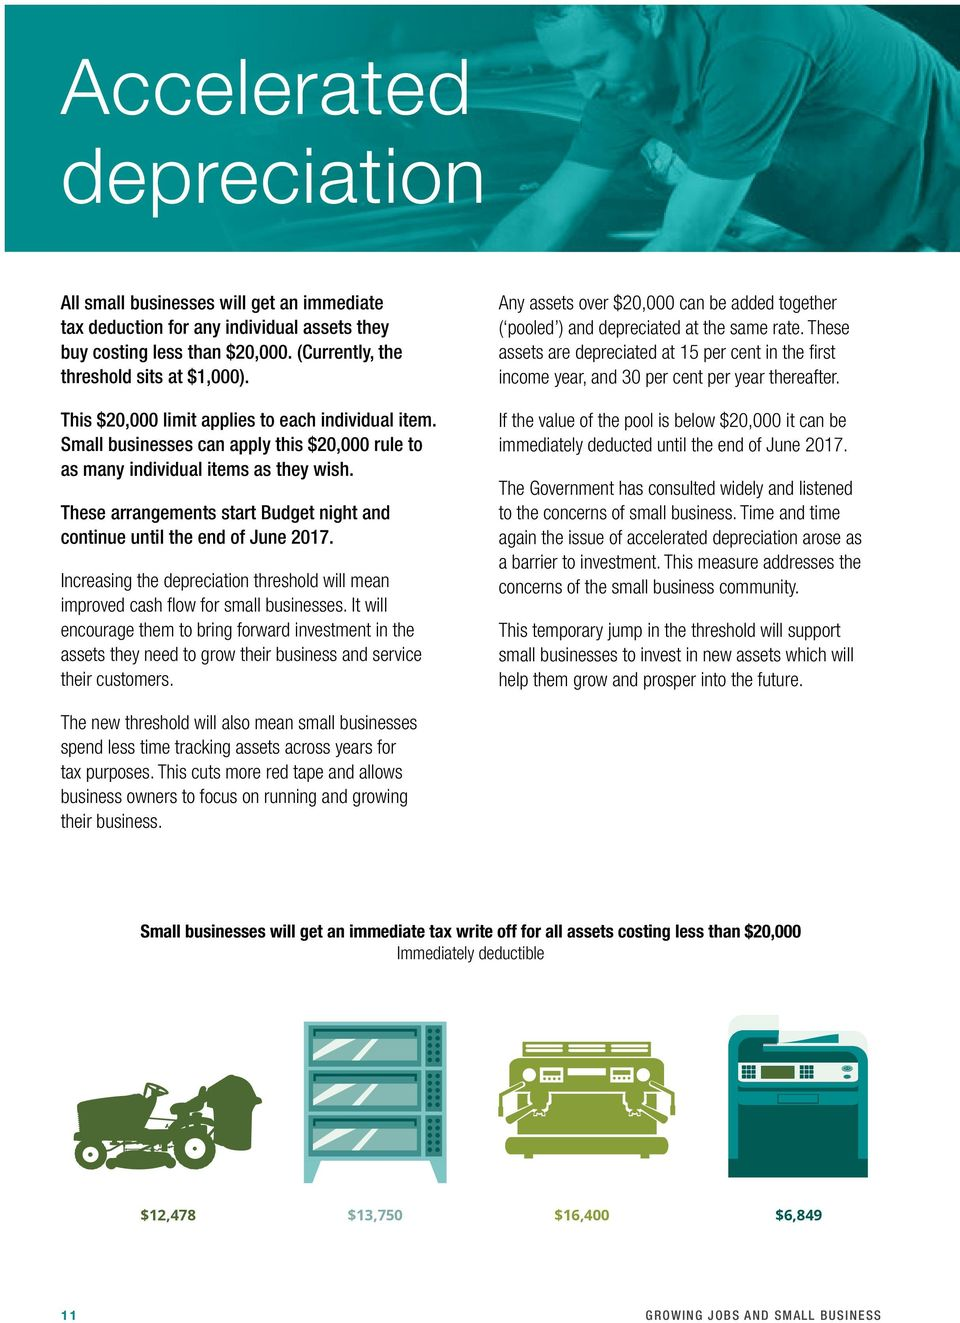 These arrangements start Budget night and continue until the end of June 2017. Increasing the depreciation threshold will mean improved cash flow for small businesses.